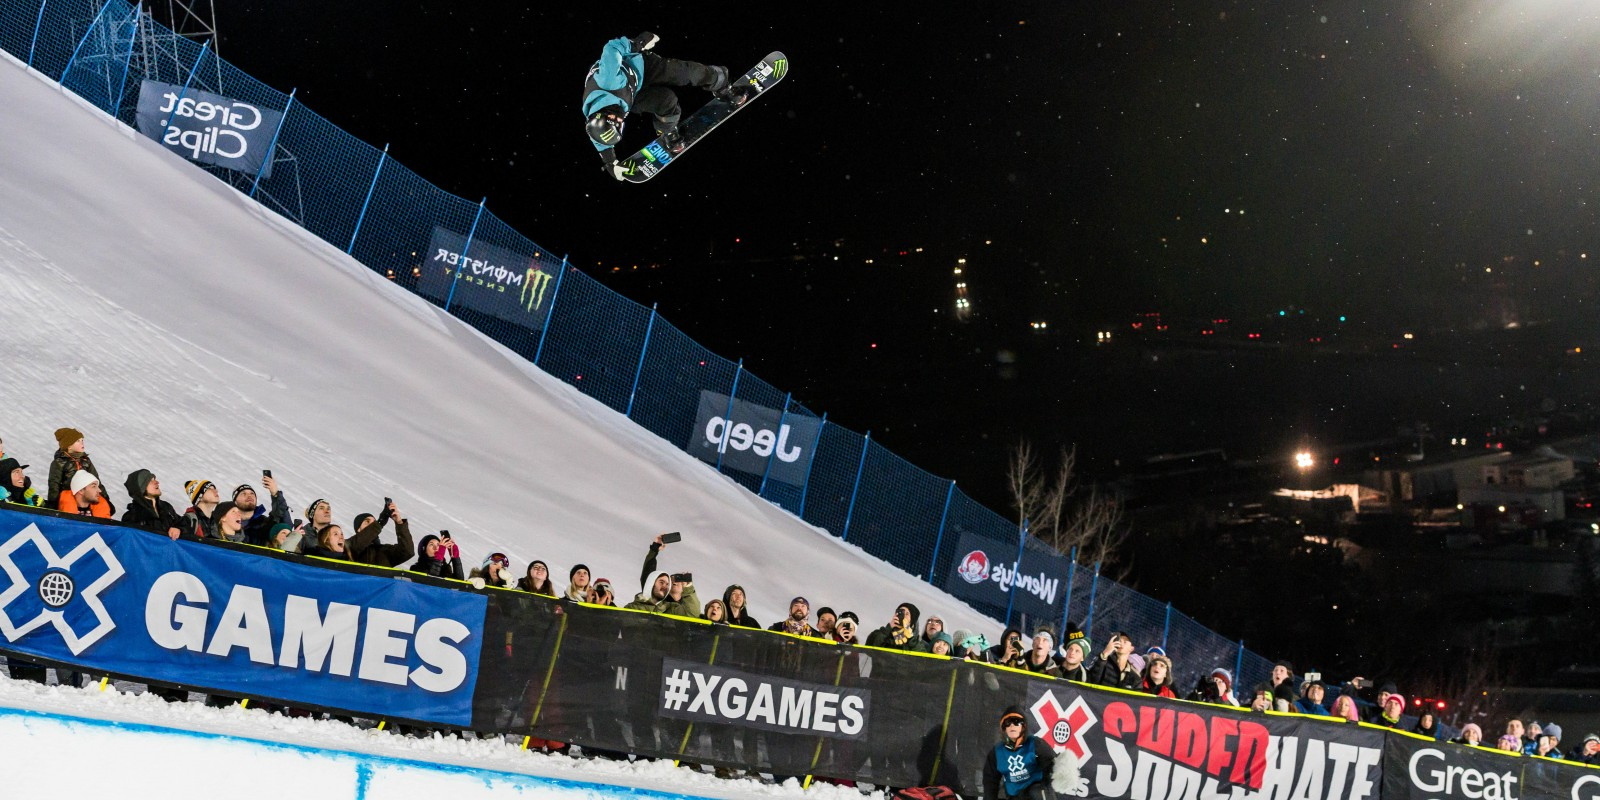 Yuto Totsuka from 2020 Winter X Games in Aspen. Silver medal in superpipe